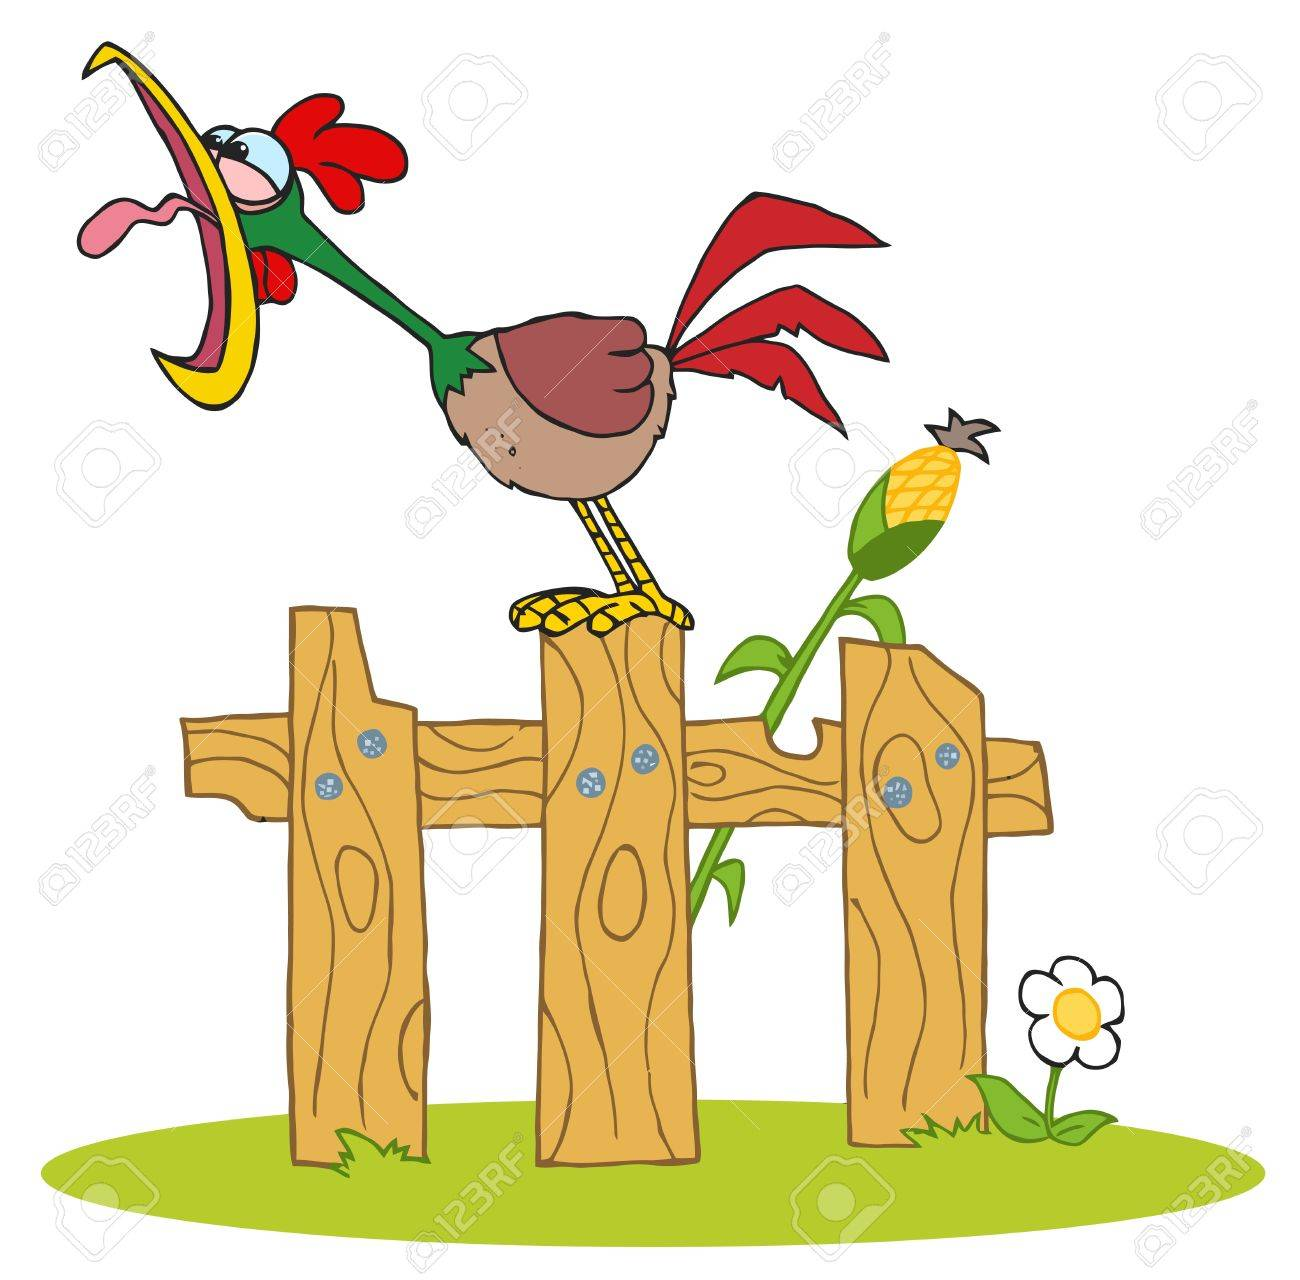 Mascot Cartoon Character A Cock Crowing Stepped On The Fence Stock Vector - 16511875